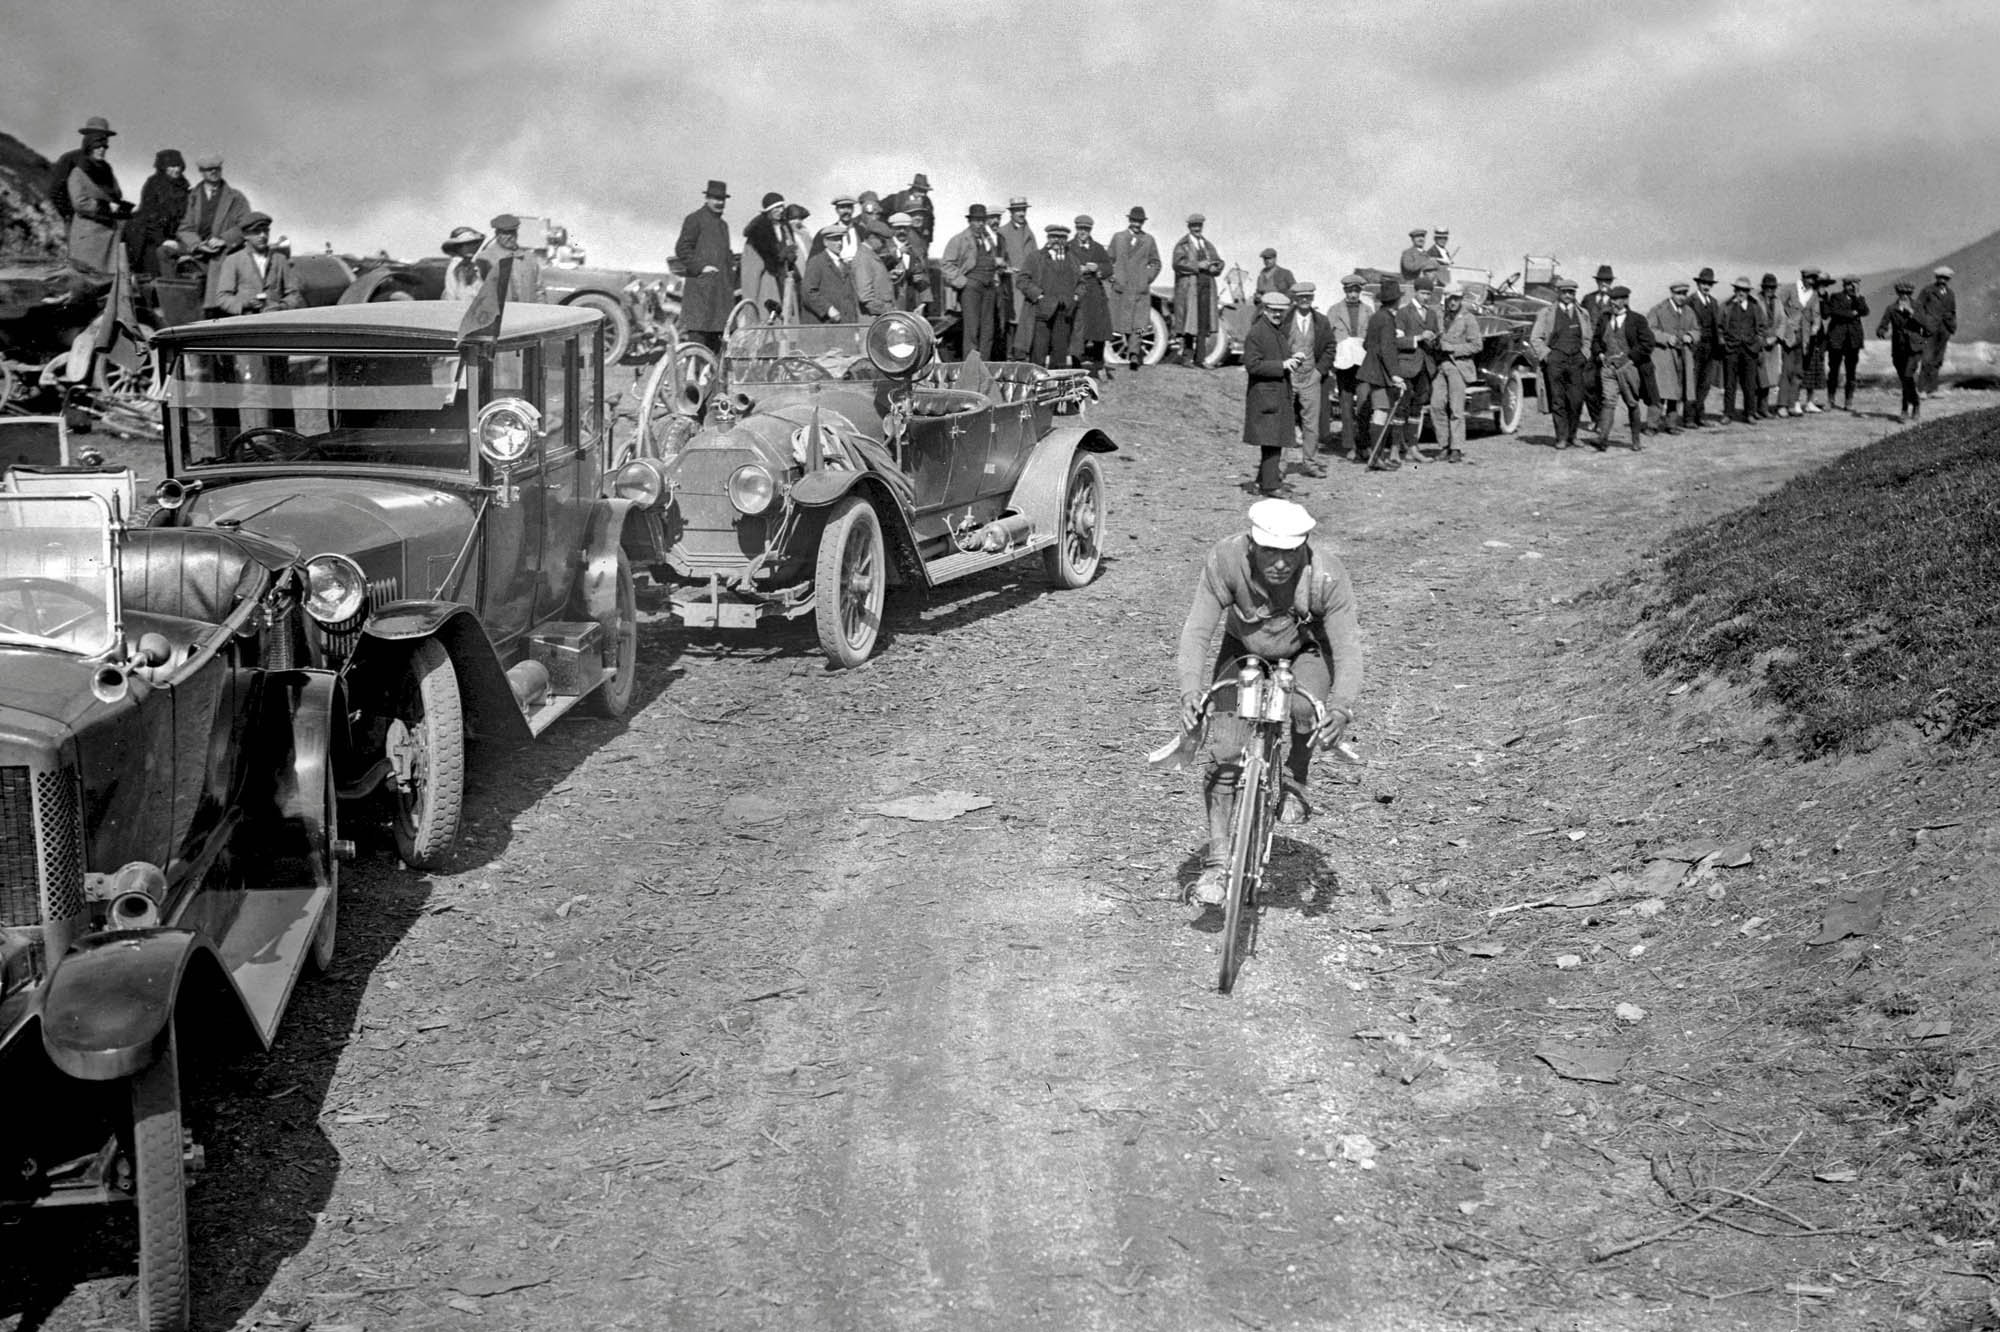 1922 Tour de France, Col du Port, Eugène Christophe